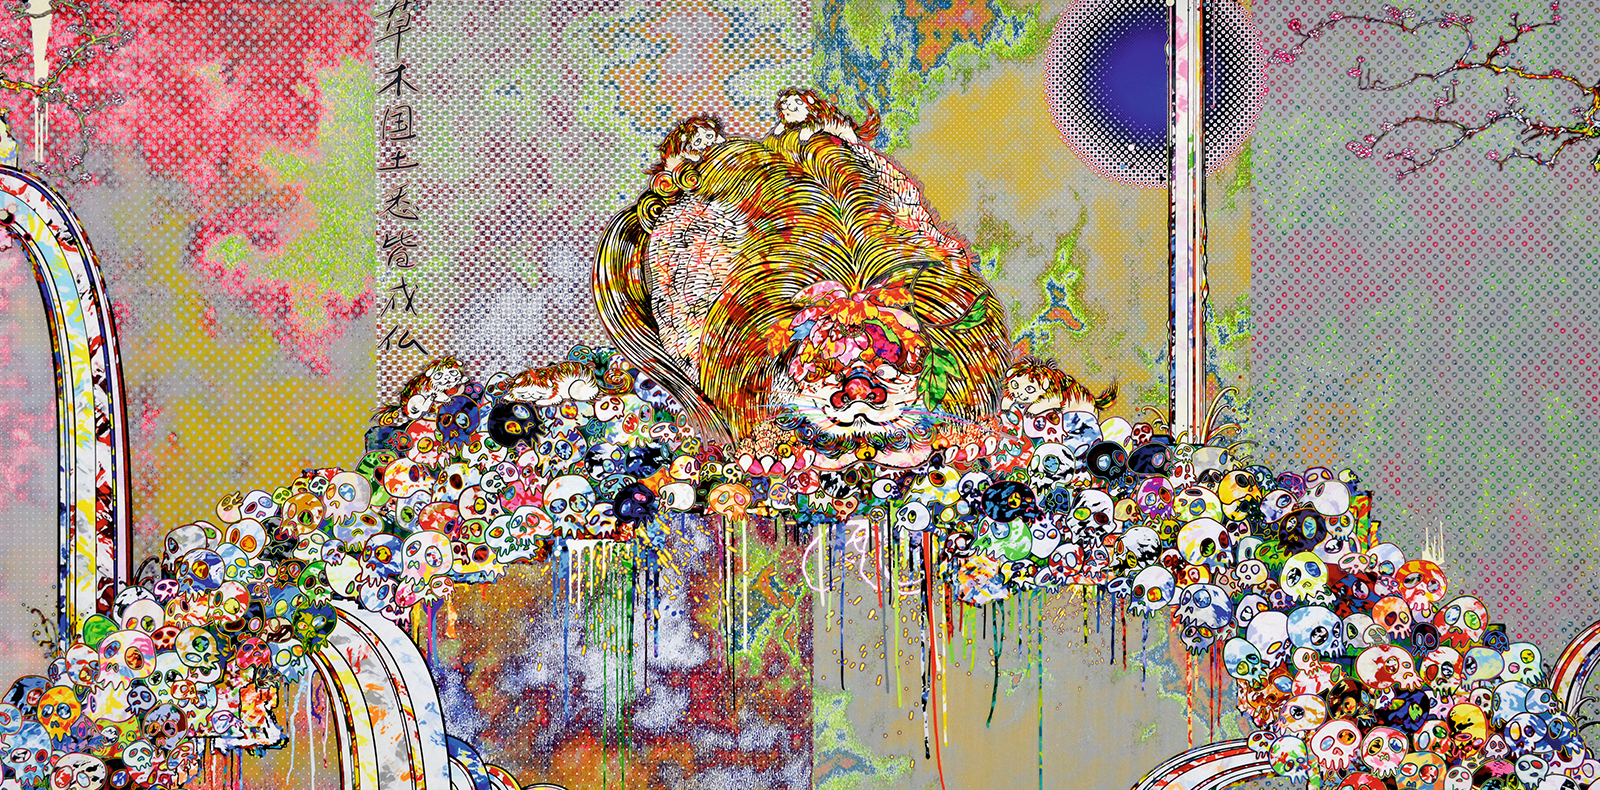 Takashi Murakami, Title TBD, 2018 Acrylic on canvas mounted on aluminium frame, 59 1/16 x 118 1/8 inches, (150 x 300 cm) Gagosian